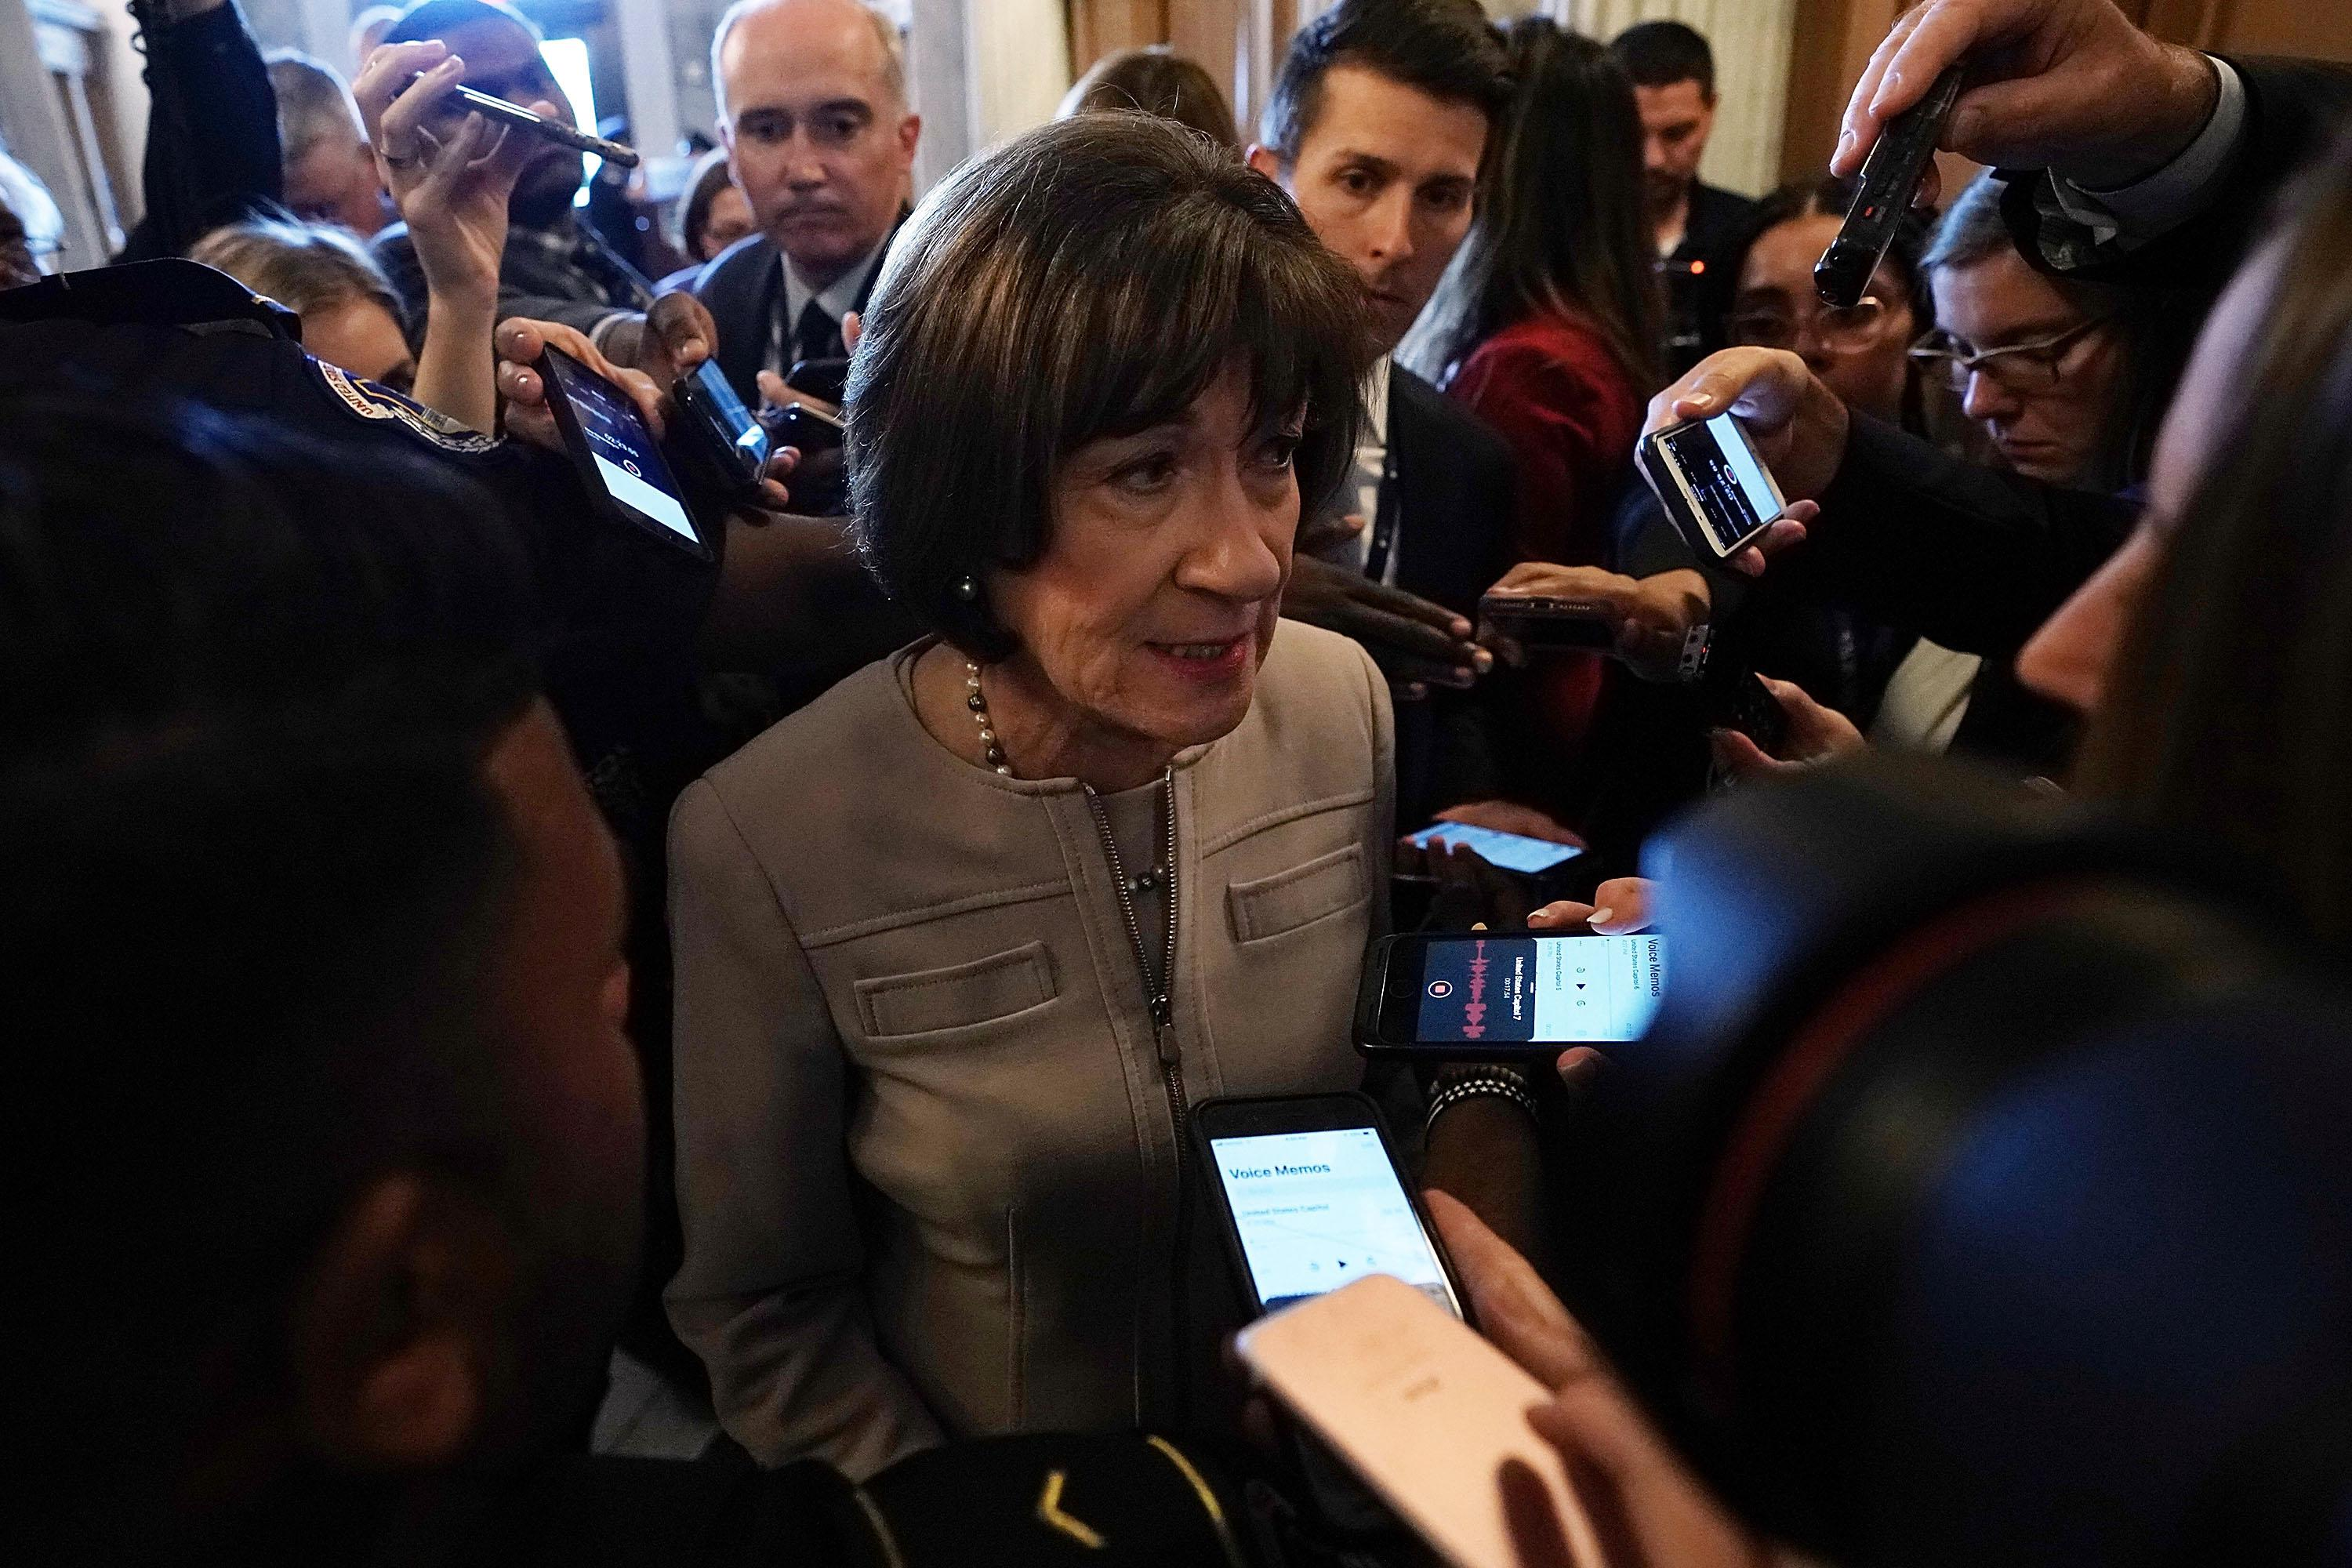 Sen. Susan Collins (R-ME) speaks to reporters at the U.S. Capitol on October 5, 2018 in Washington, D.C.